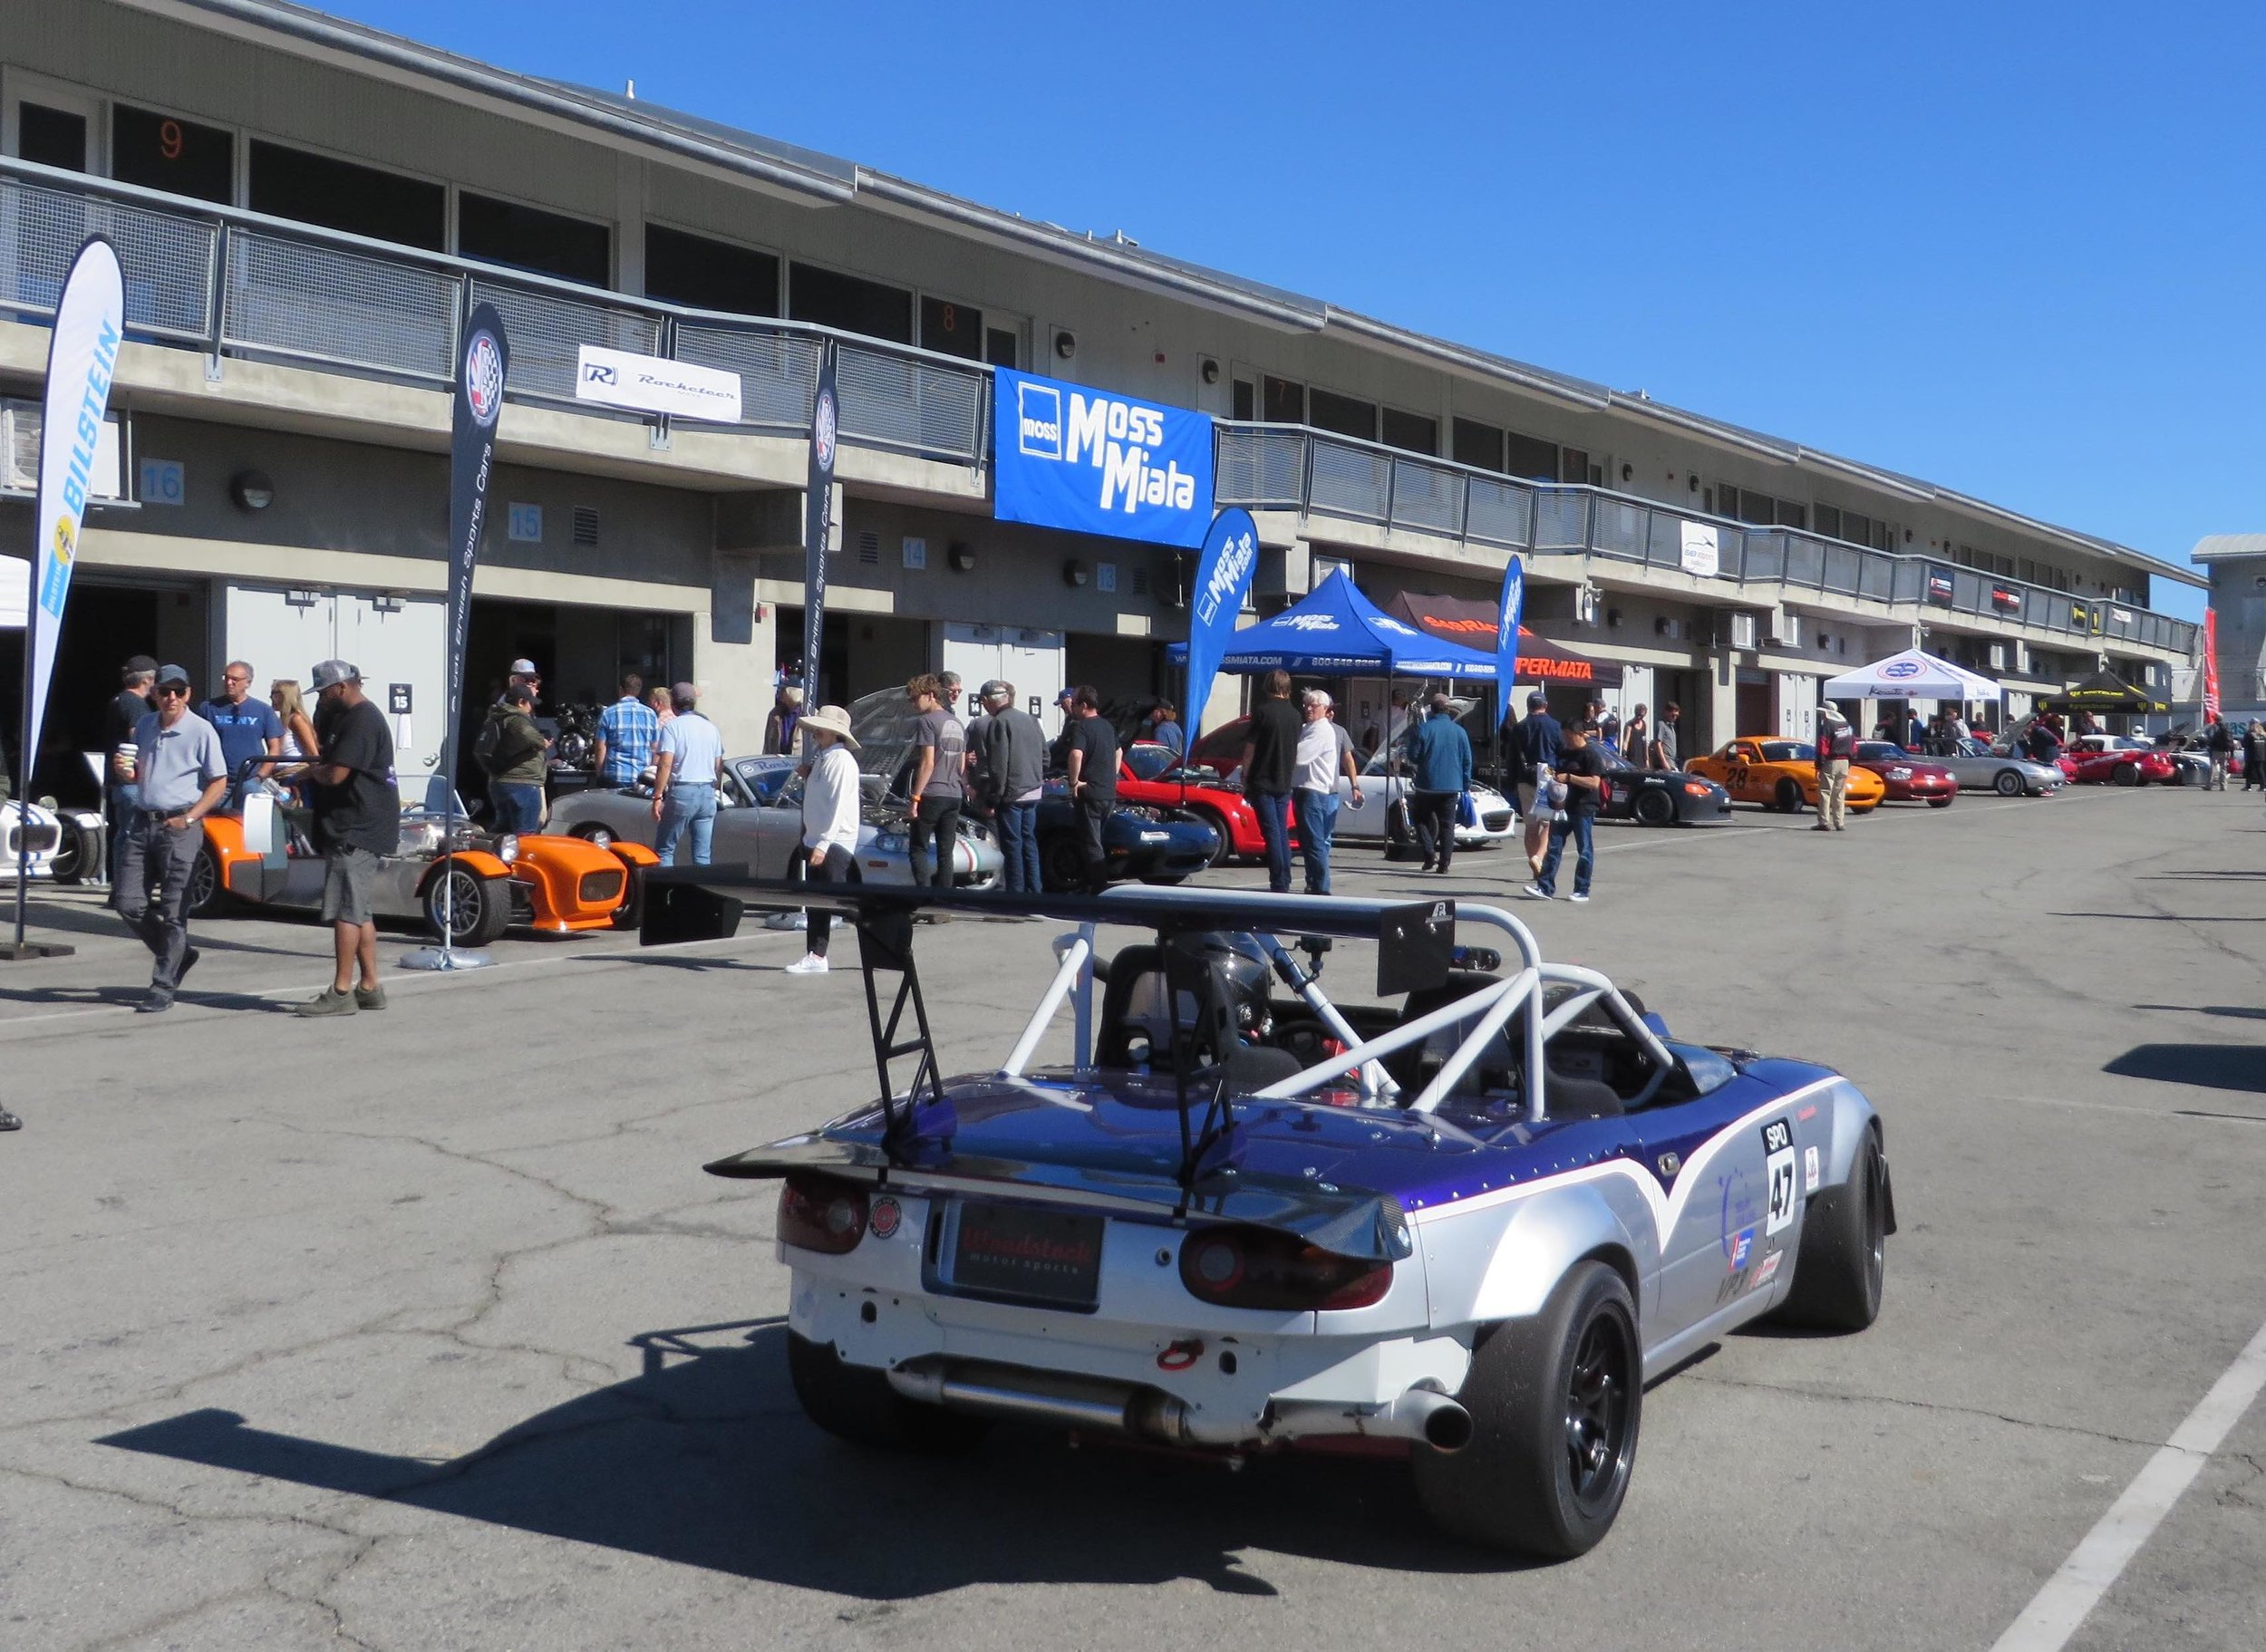 Making a pass by vendors alley. All tuned up and ready for the track.